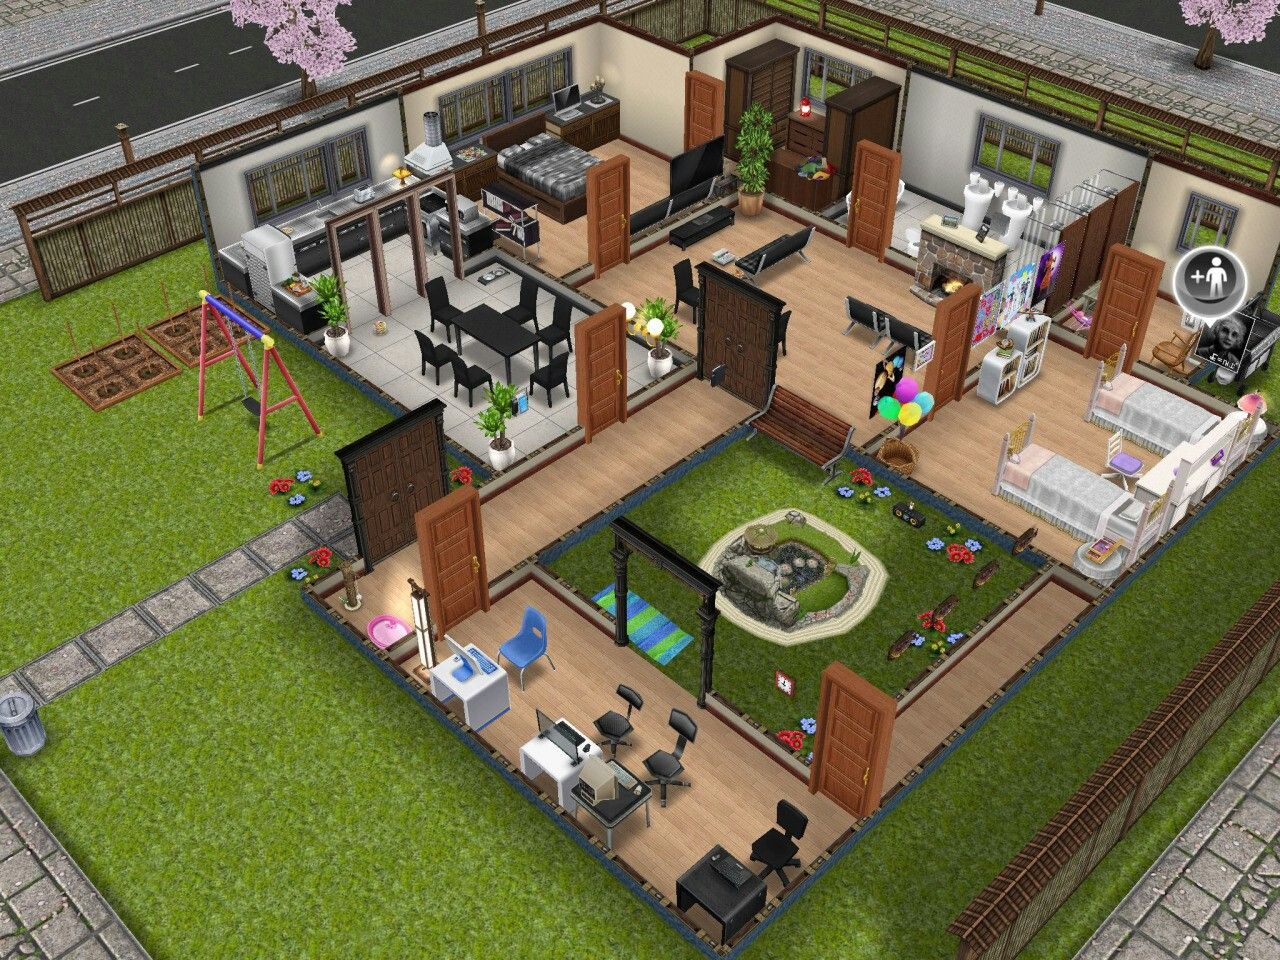 Pin by Pamela Pitre on The Sims Freeplay | Pinterest | Sims